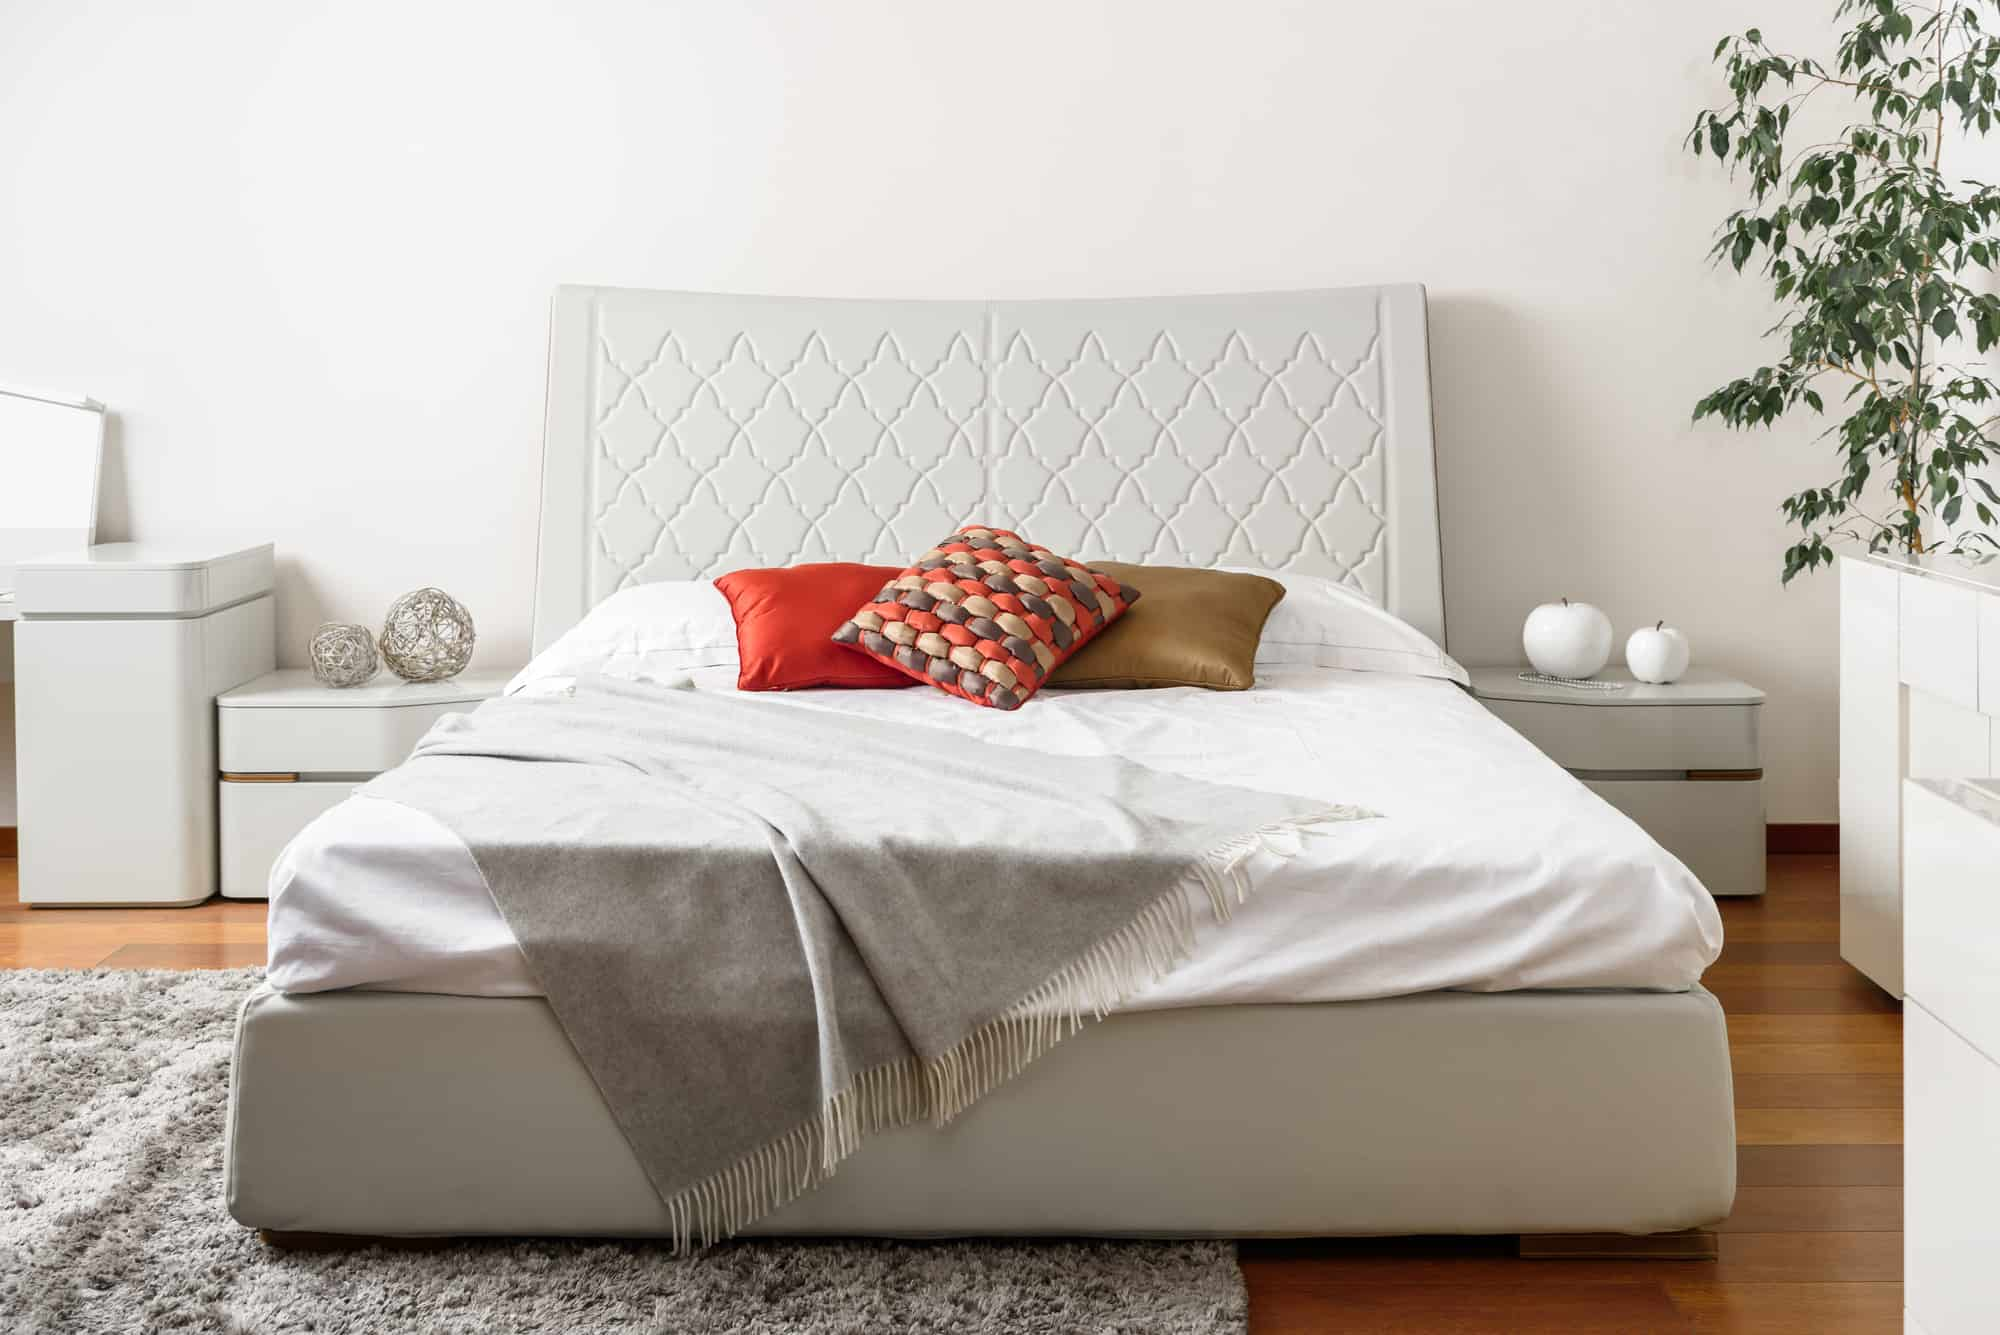 A Few Aspects To Consider Before Buying A Hybrid Mattress